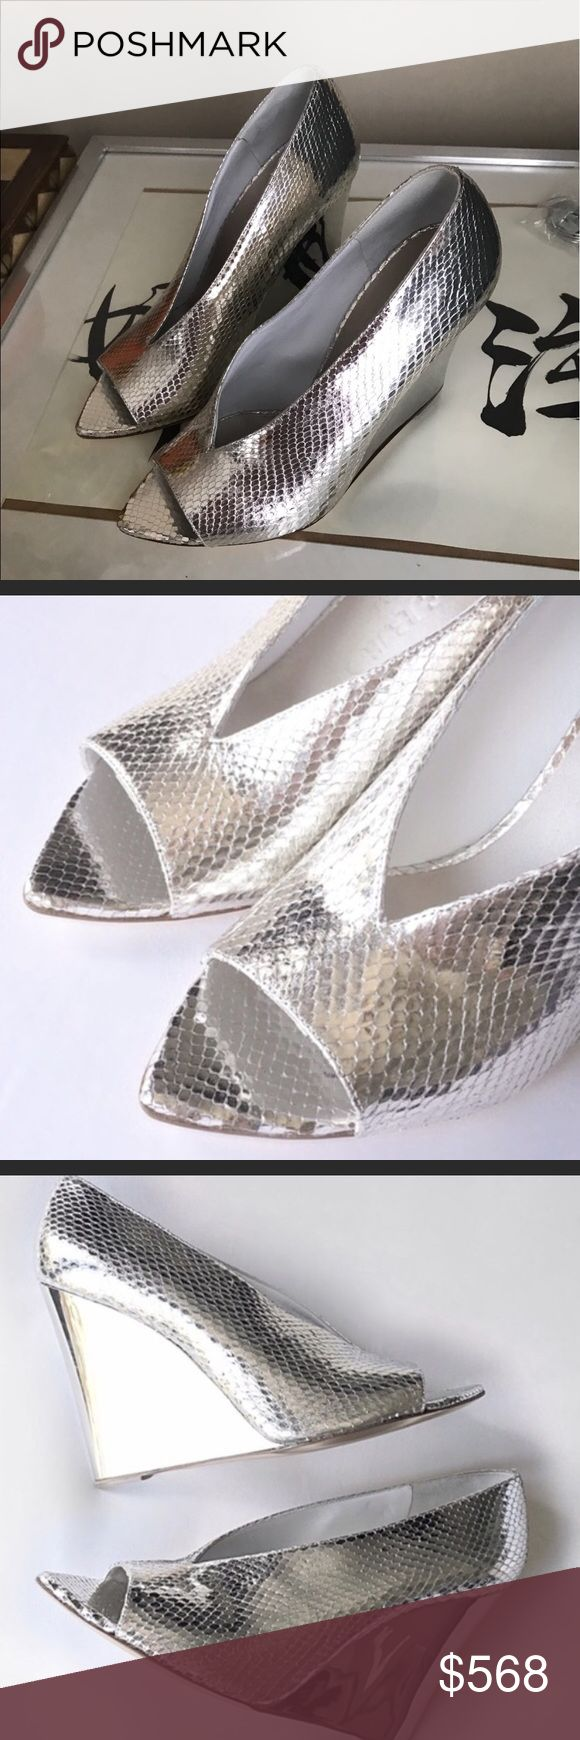 Burberry silver wedge shoes NEW in box! Absolutely gorgeous authentic Burberry wedges. Burberry Prorsum Shoreham wedge. Silver metallic snakeskin. Totally flawless! Includes box & dust bag. Size 37 Burberry Shoes Wedges